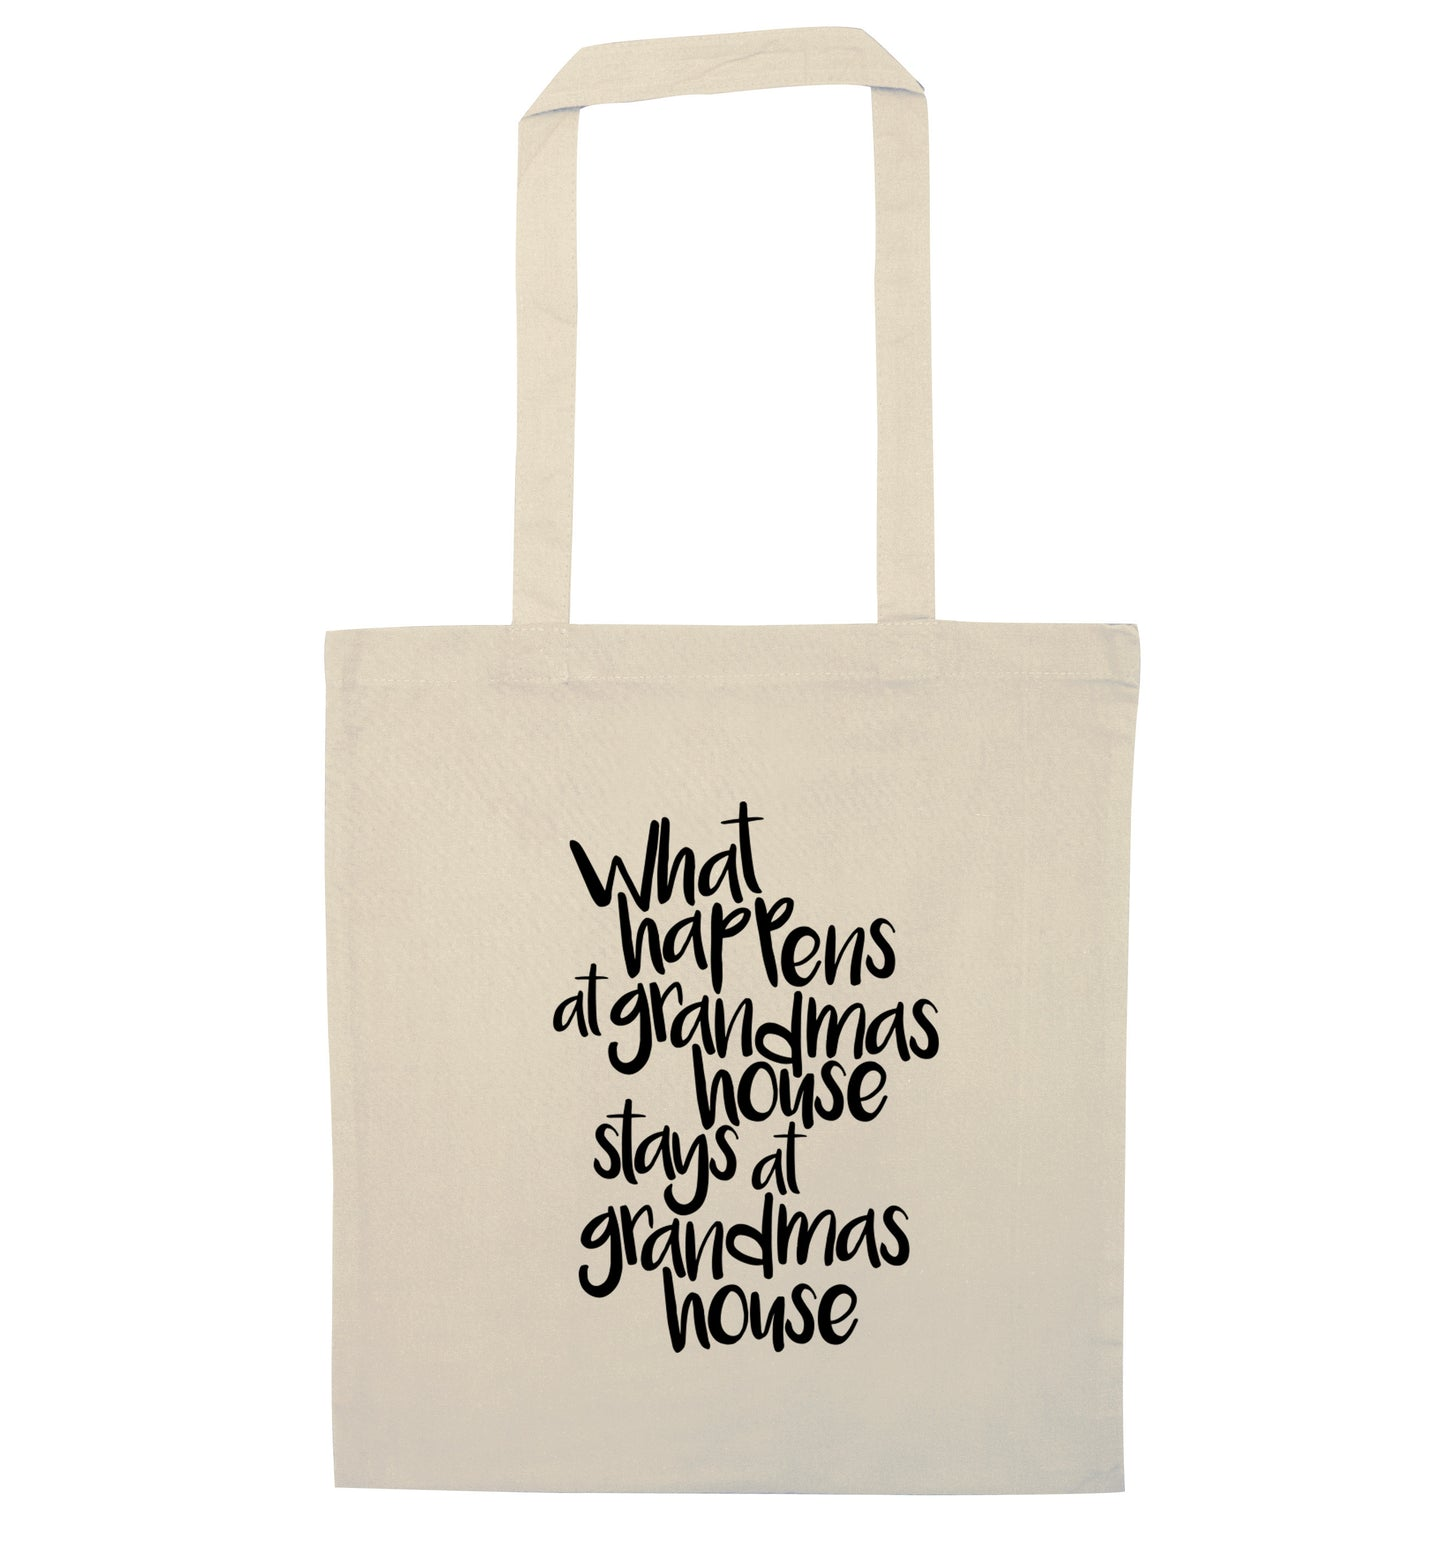 What happens at grandmas house stays at grandmas house natural tote bag